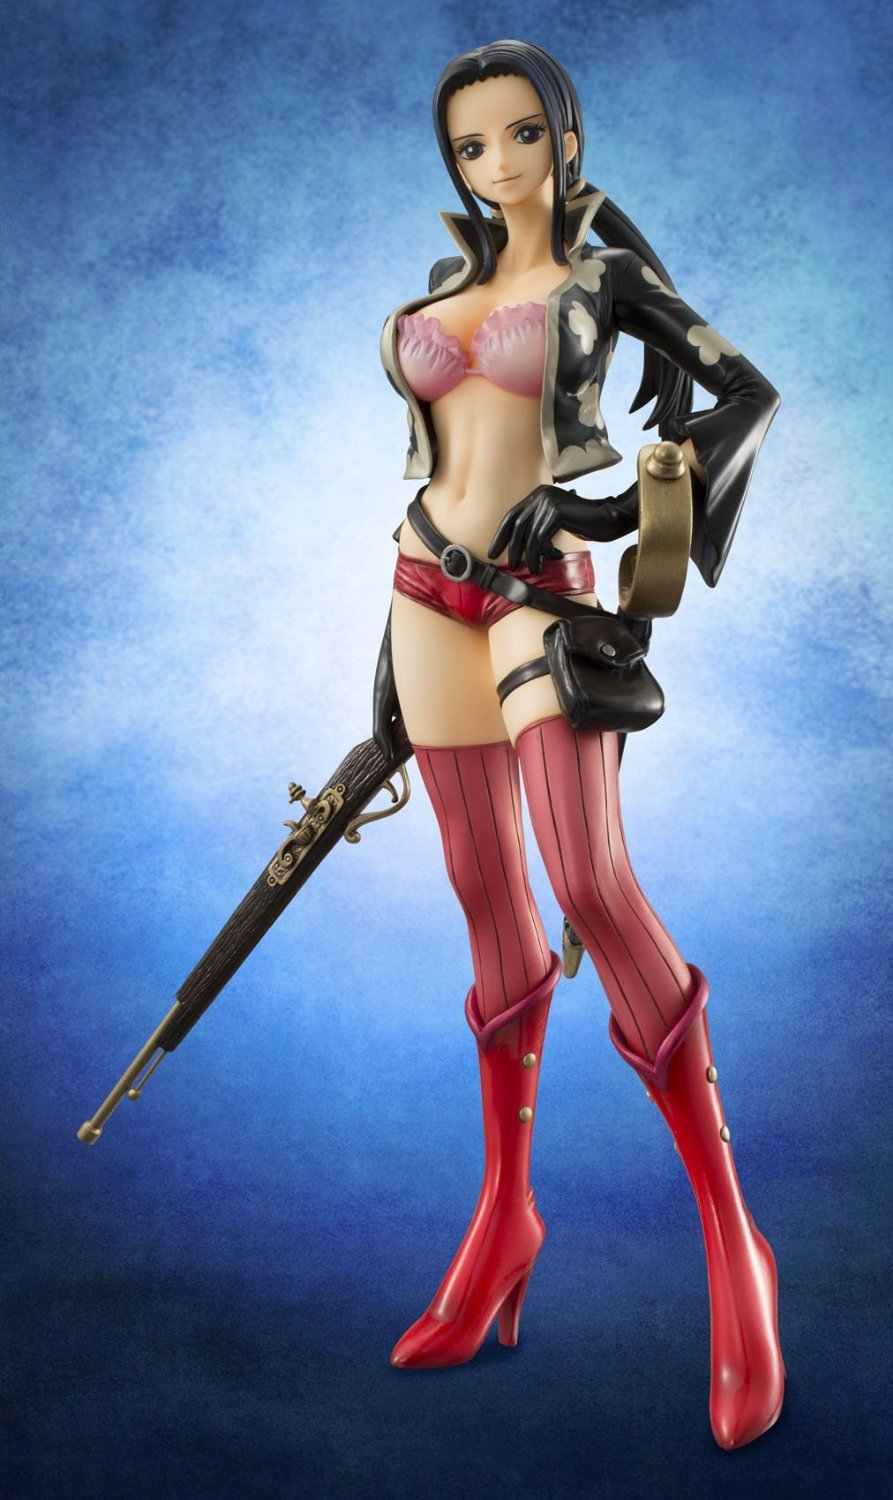 Robin one piece artificial girl 3 adult scene